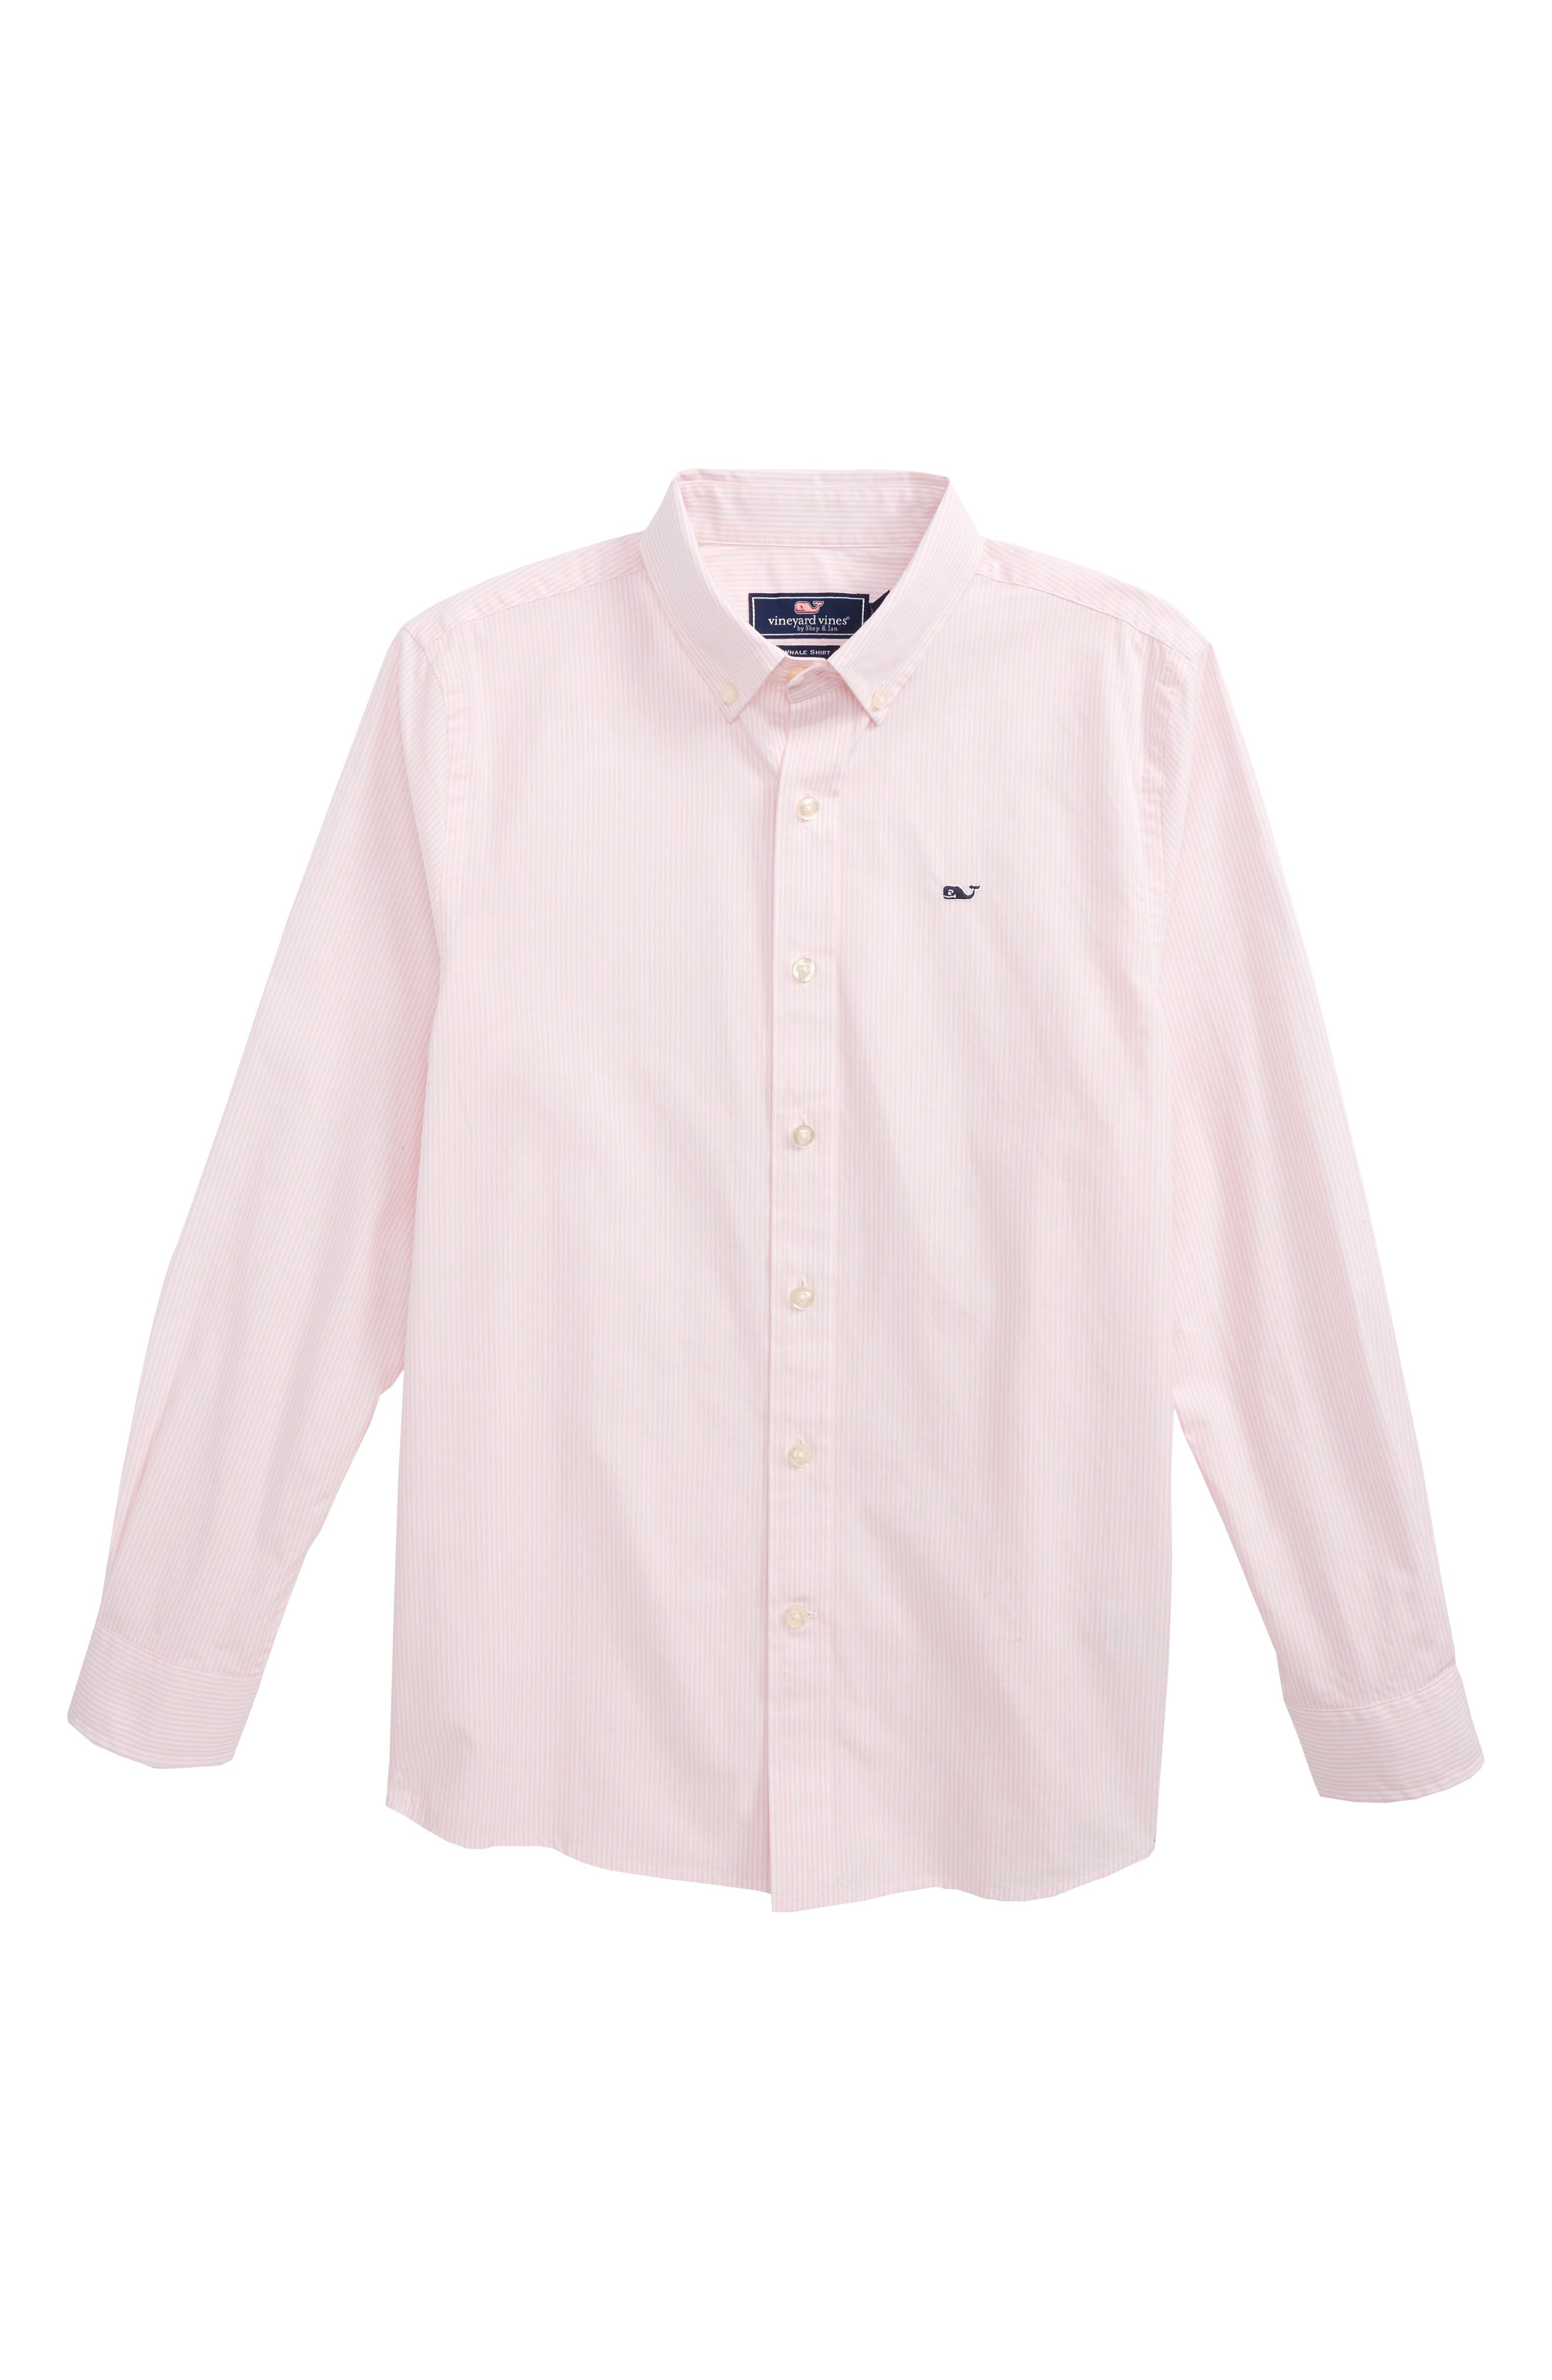 Vineyard Vines Fine Line Stripe - Whale Woven Shirt (Big Boys)